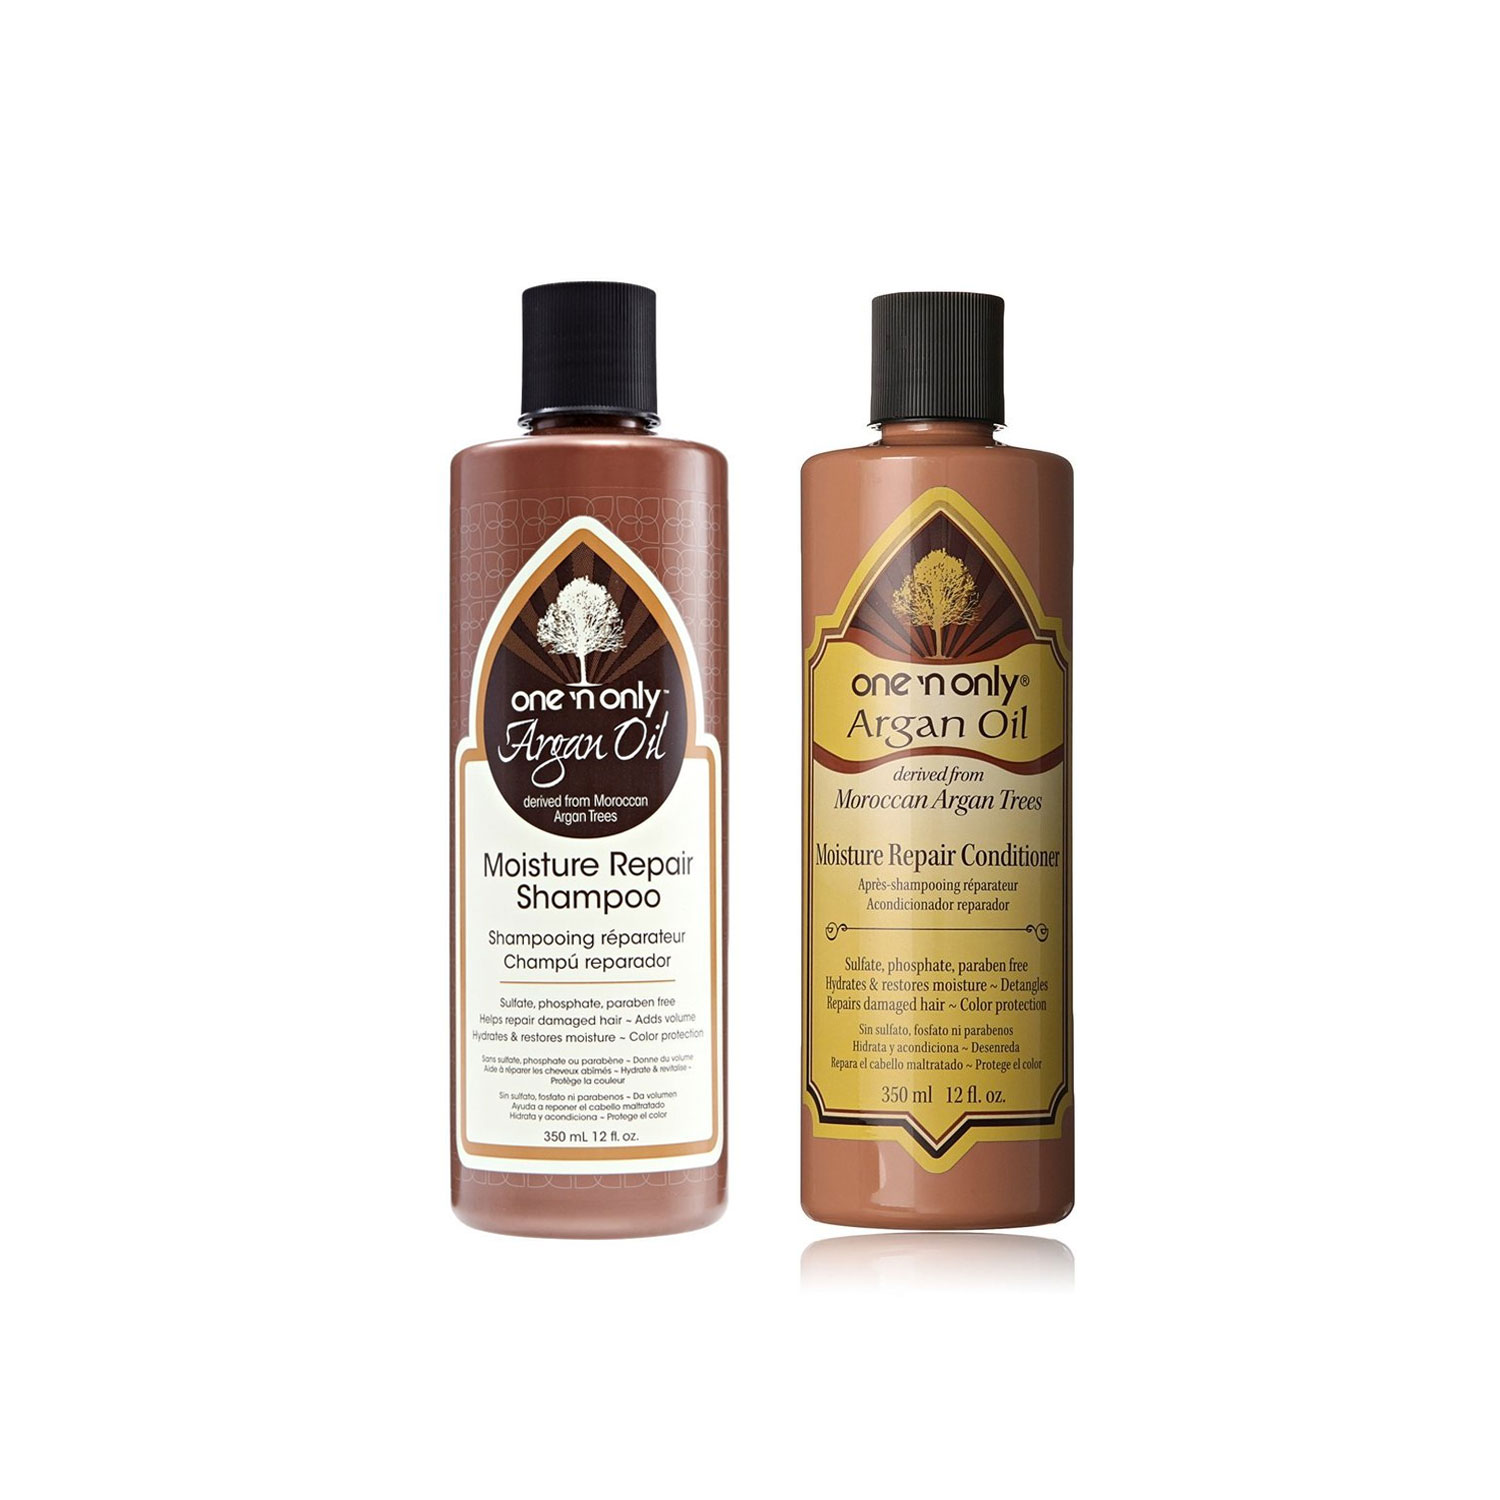 Image of One n Only Argan OIL Moisture Repair Shampoo & Conditioner Set, 12oz